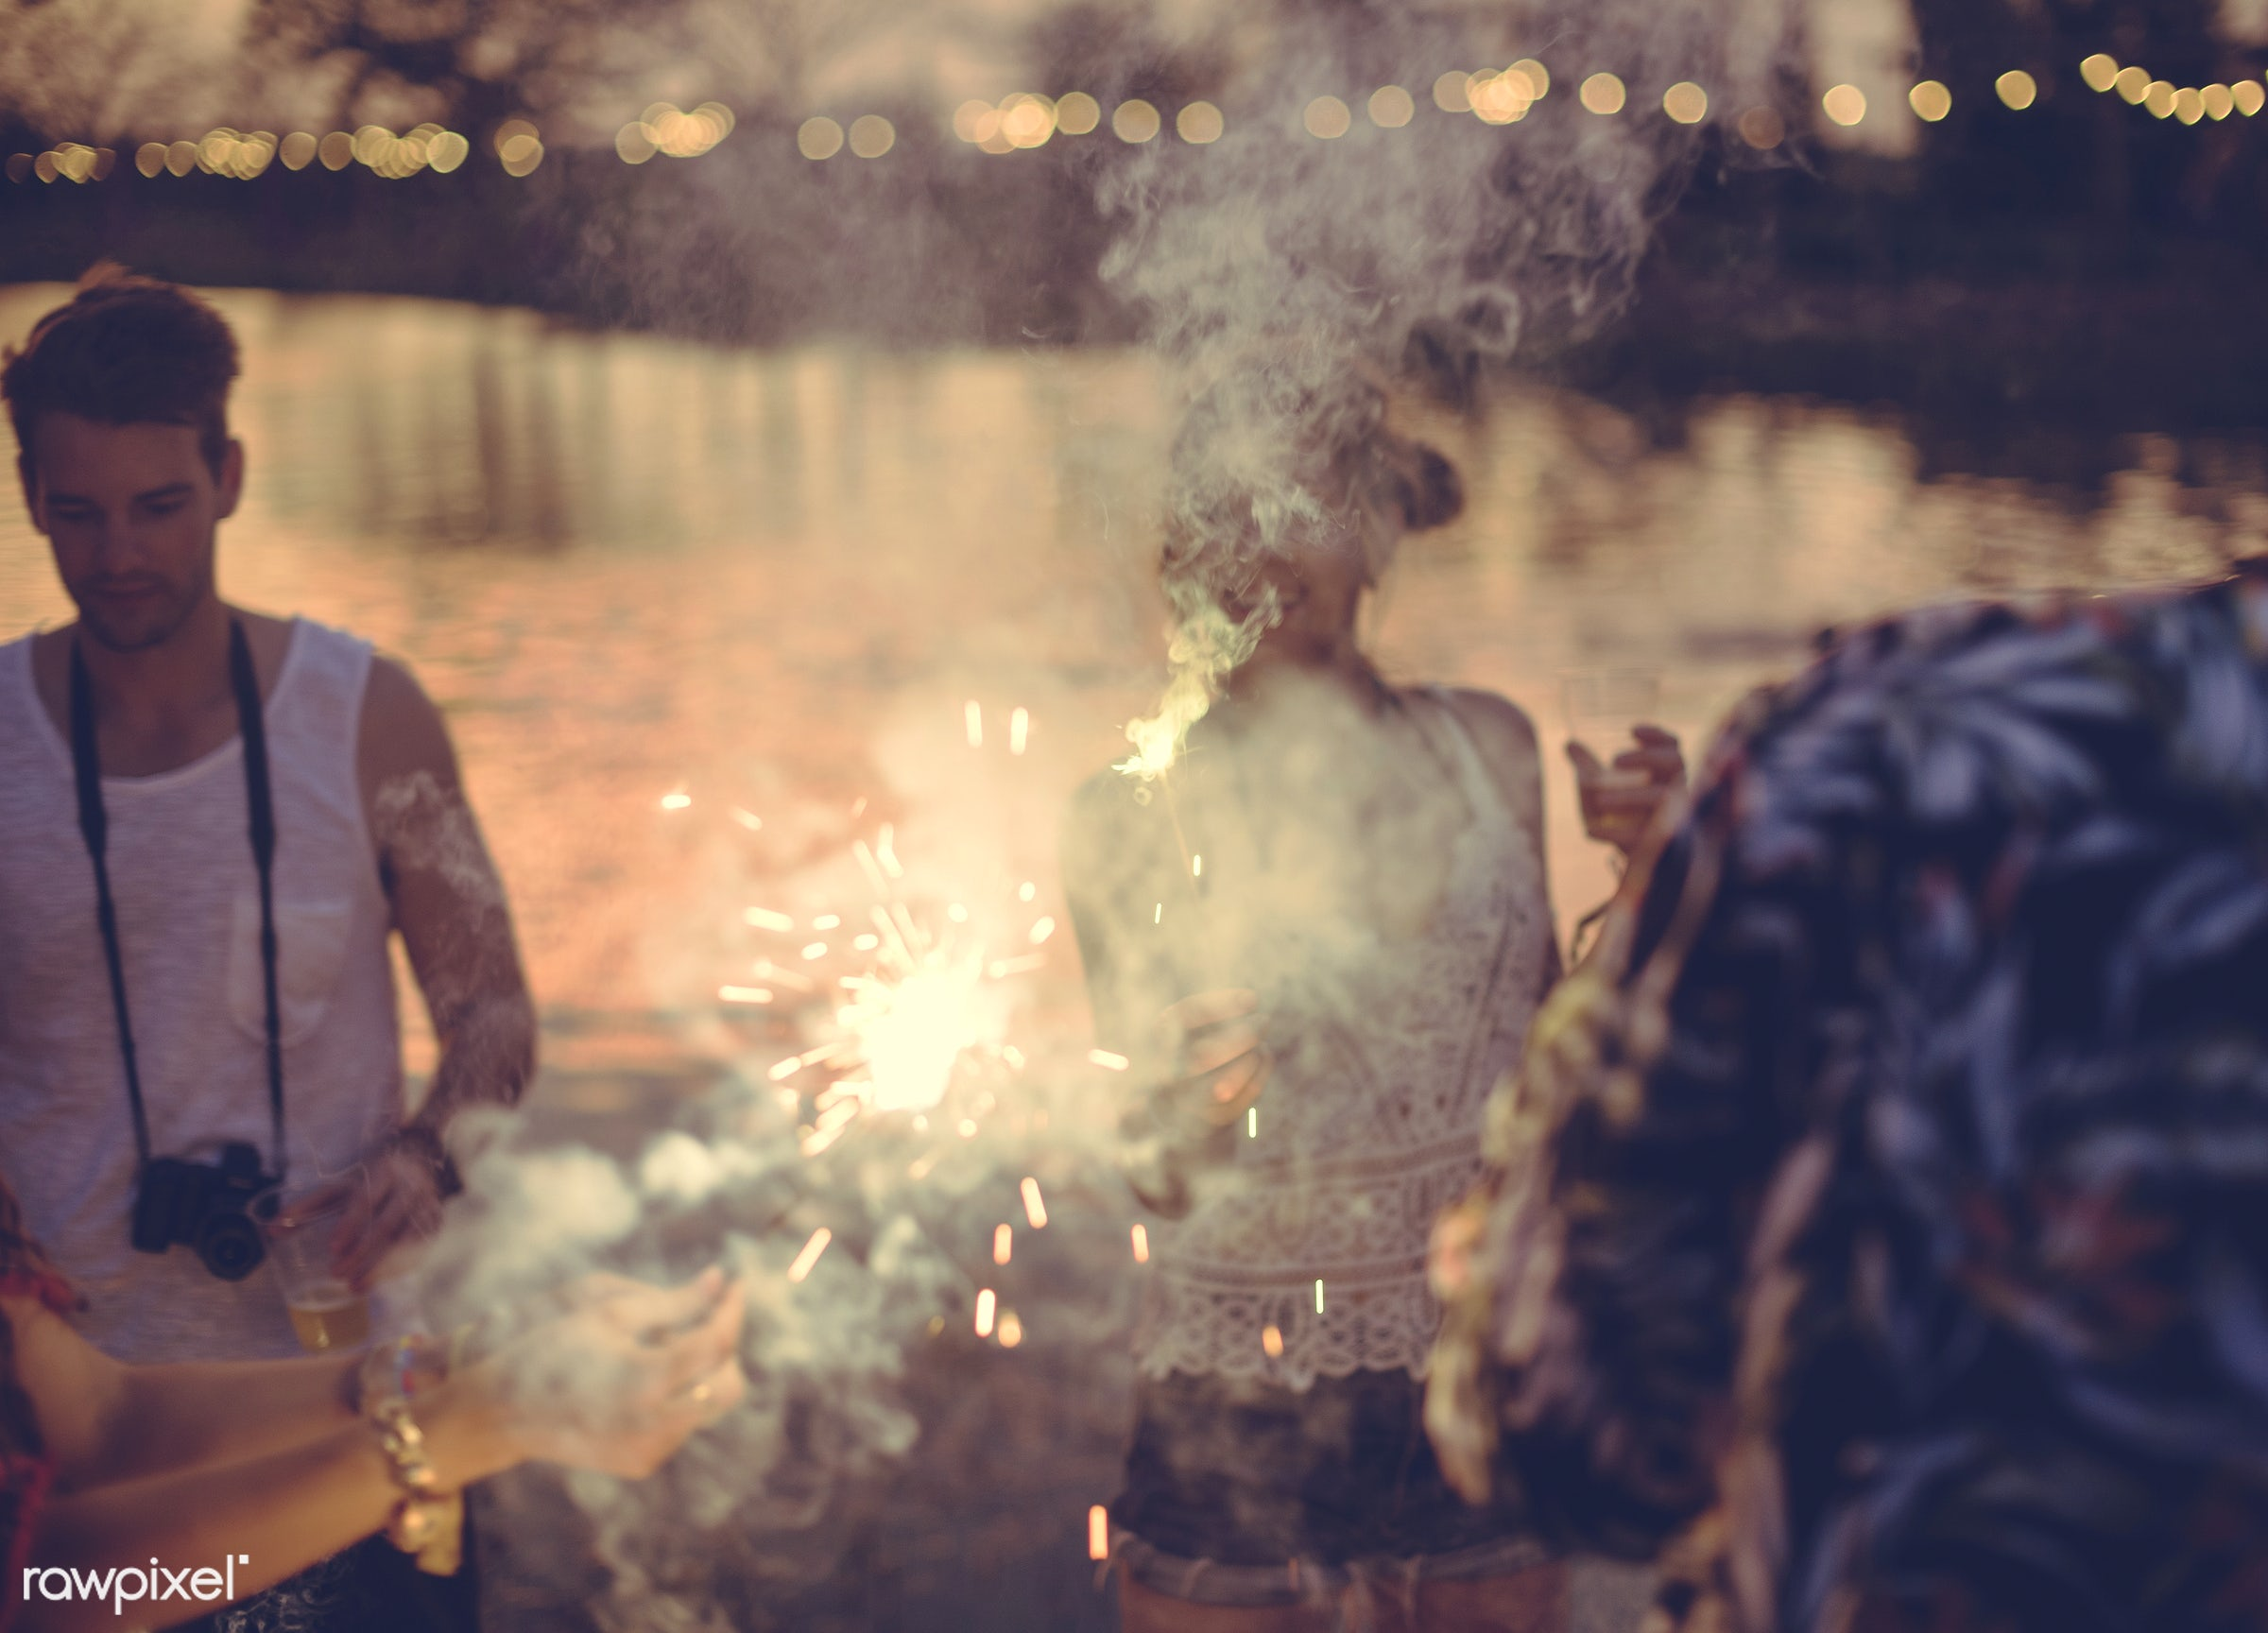 concert, person, relax, carefree, party, people, together, friends, sparkler, socializing, hands, event, woman, lifestyle,...